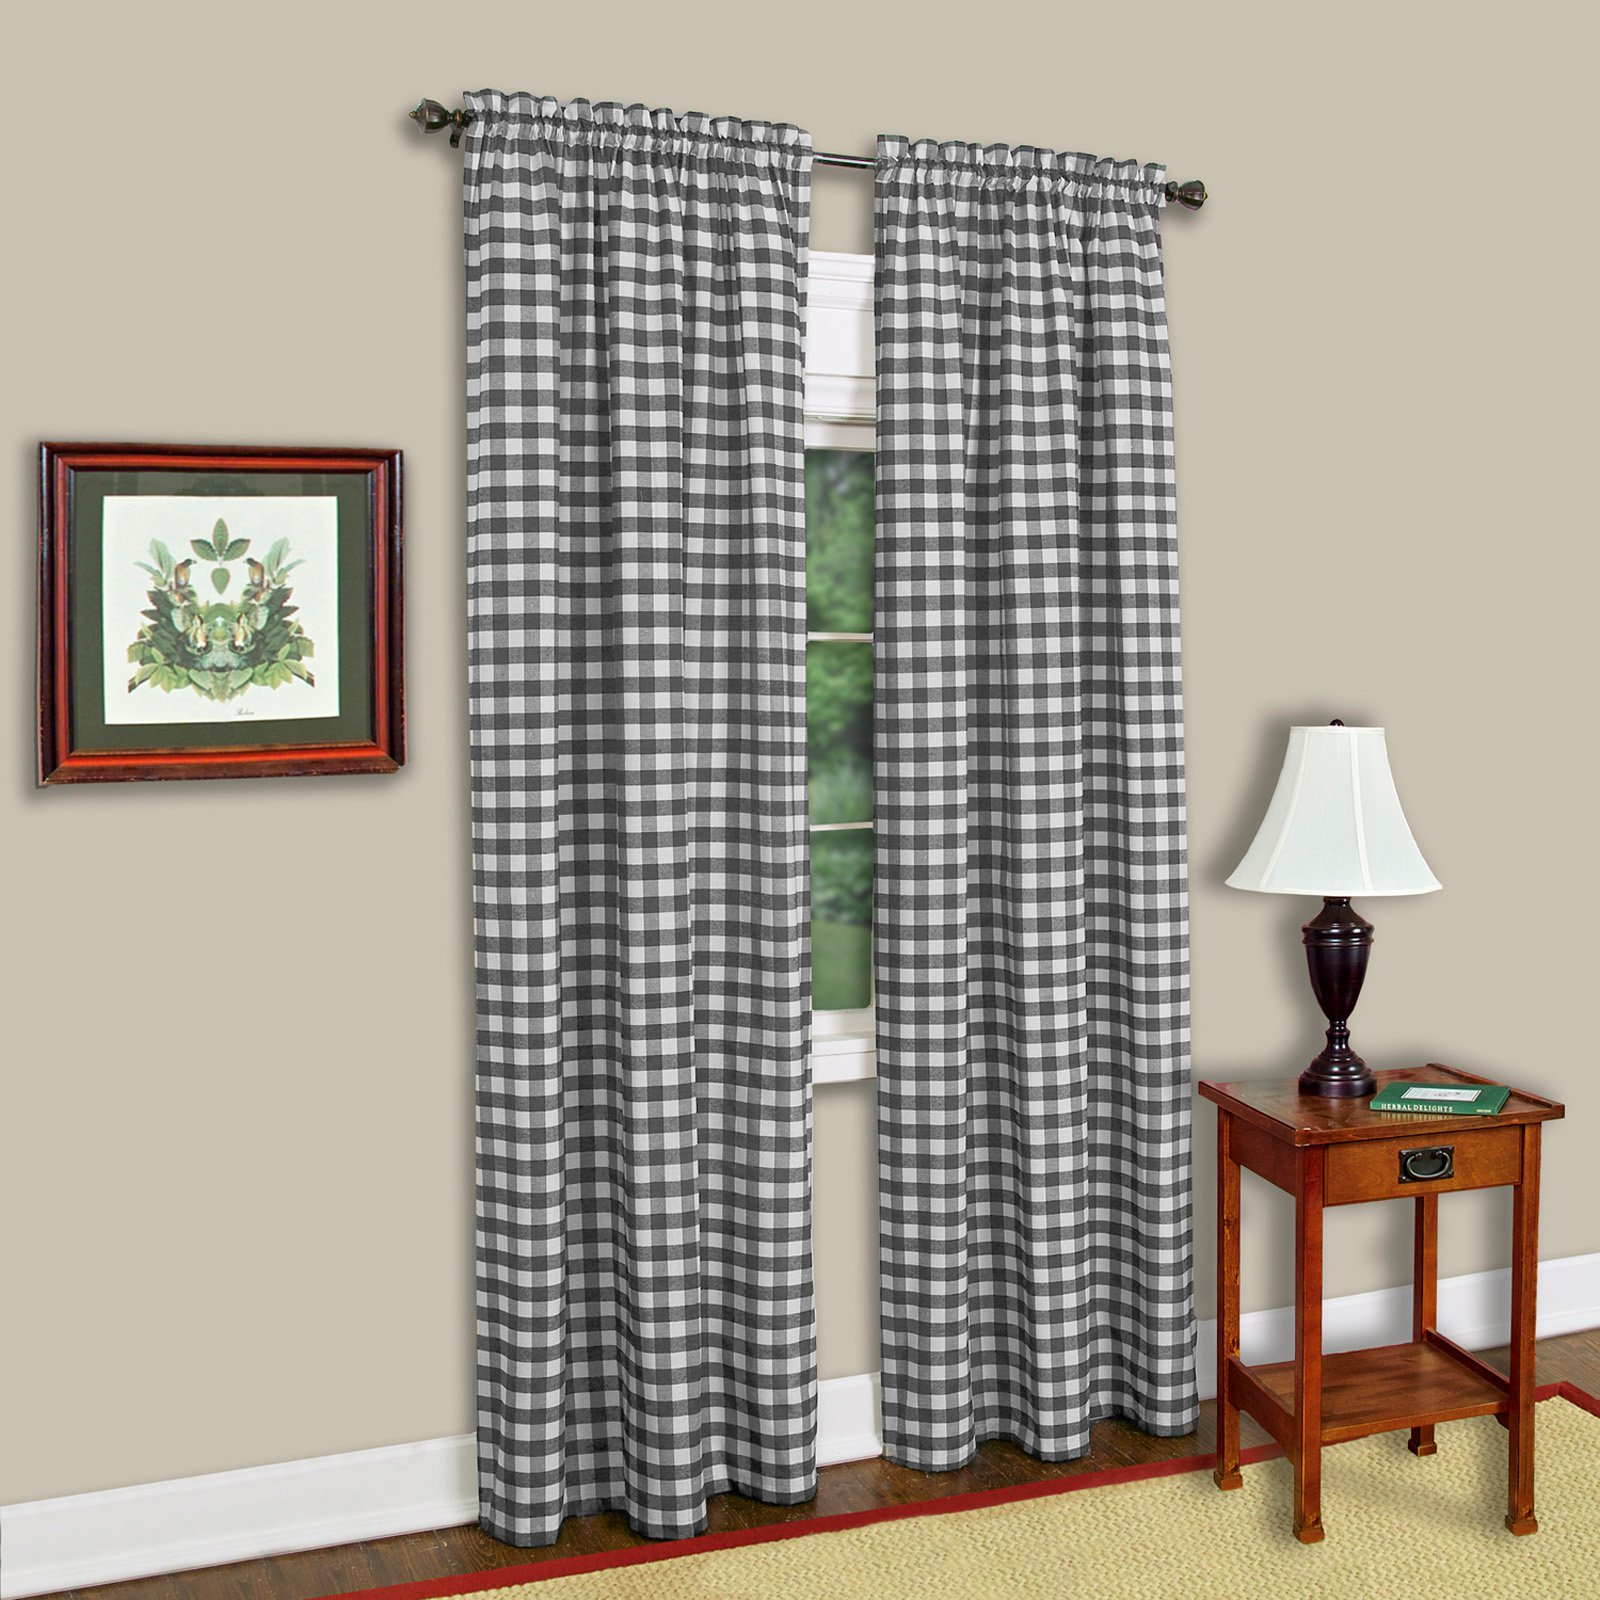 curtains two of grey ikea living ideas curtainsblack for photo room singular black curtain and white full tone gray bedroom shower size drapes